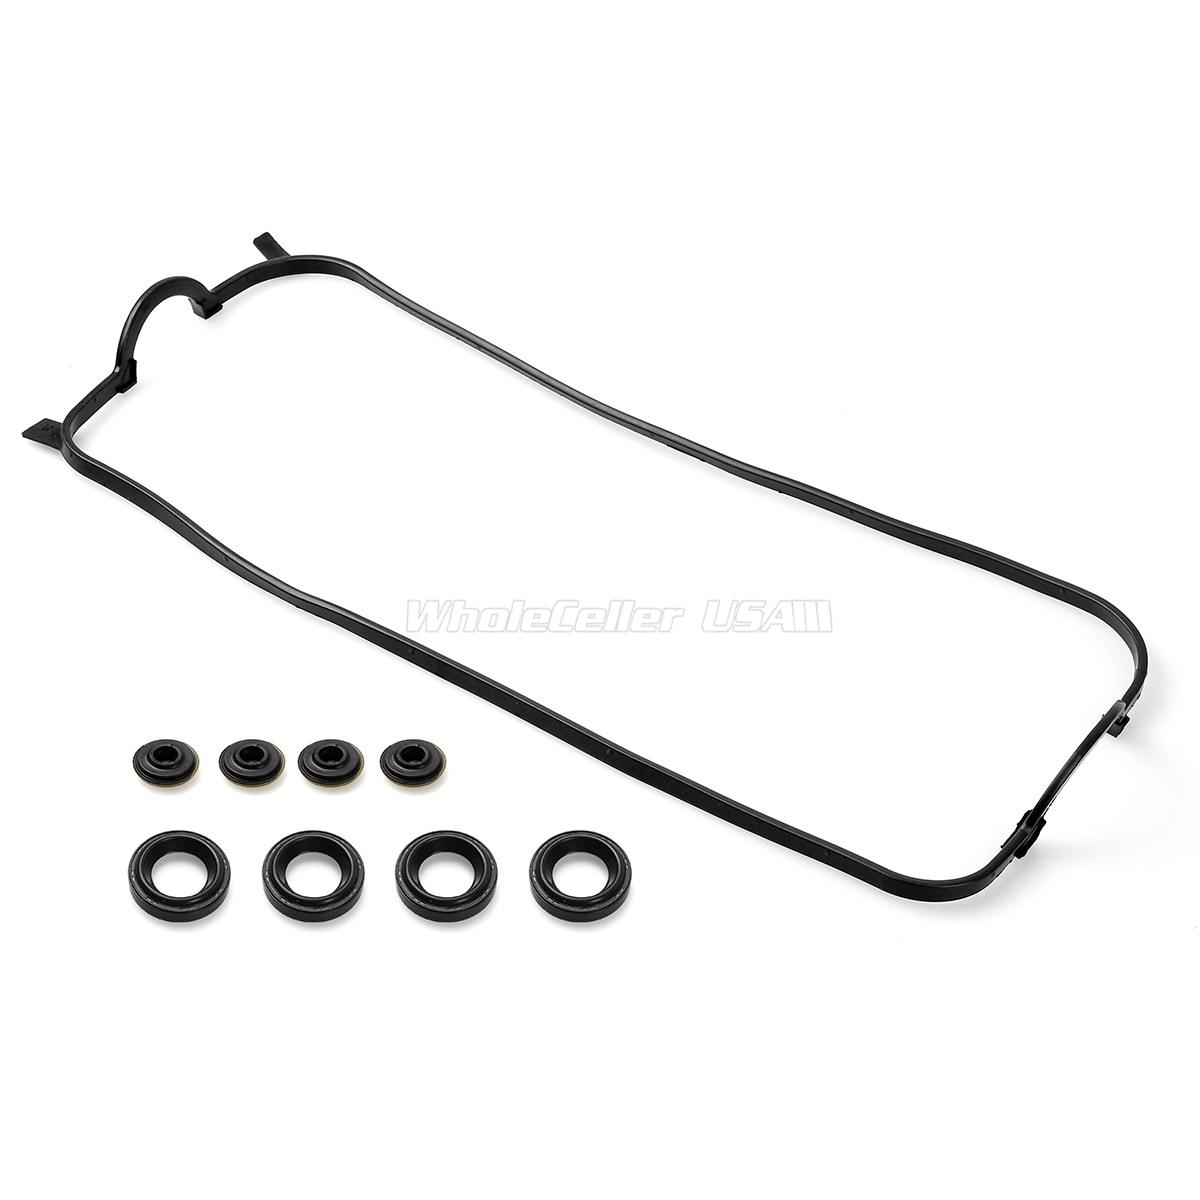 Valve Cover Gaskets Fit Honda For Acura For Isuzu 94-02 2